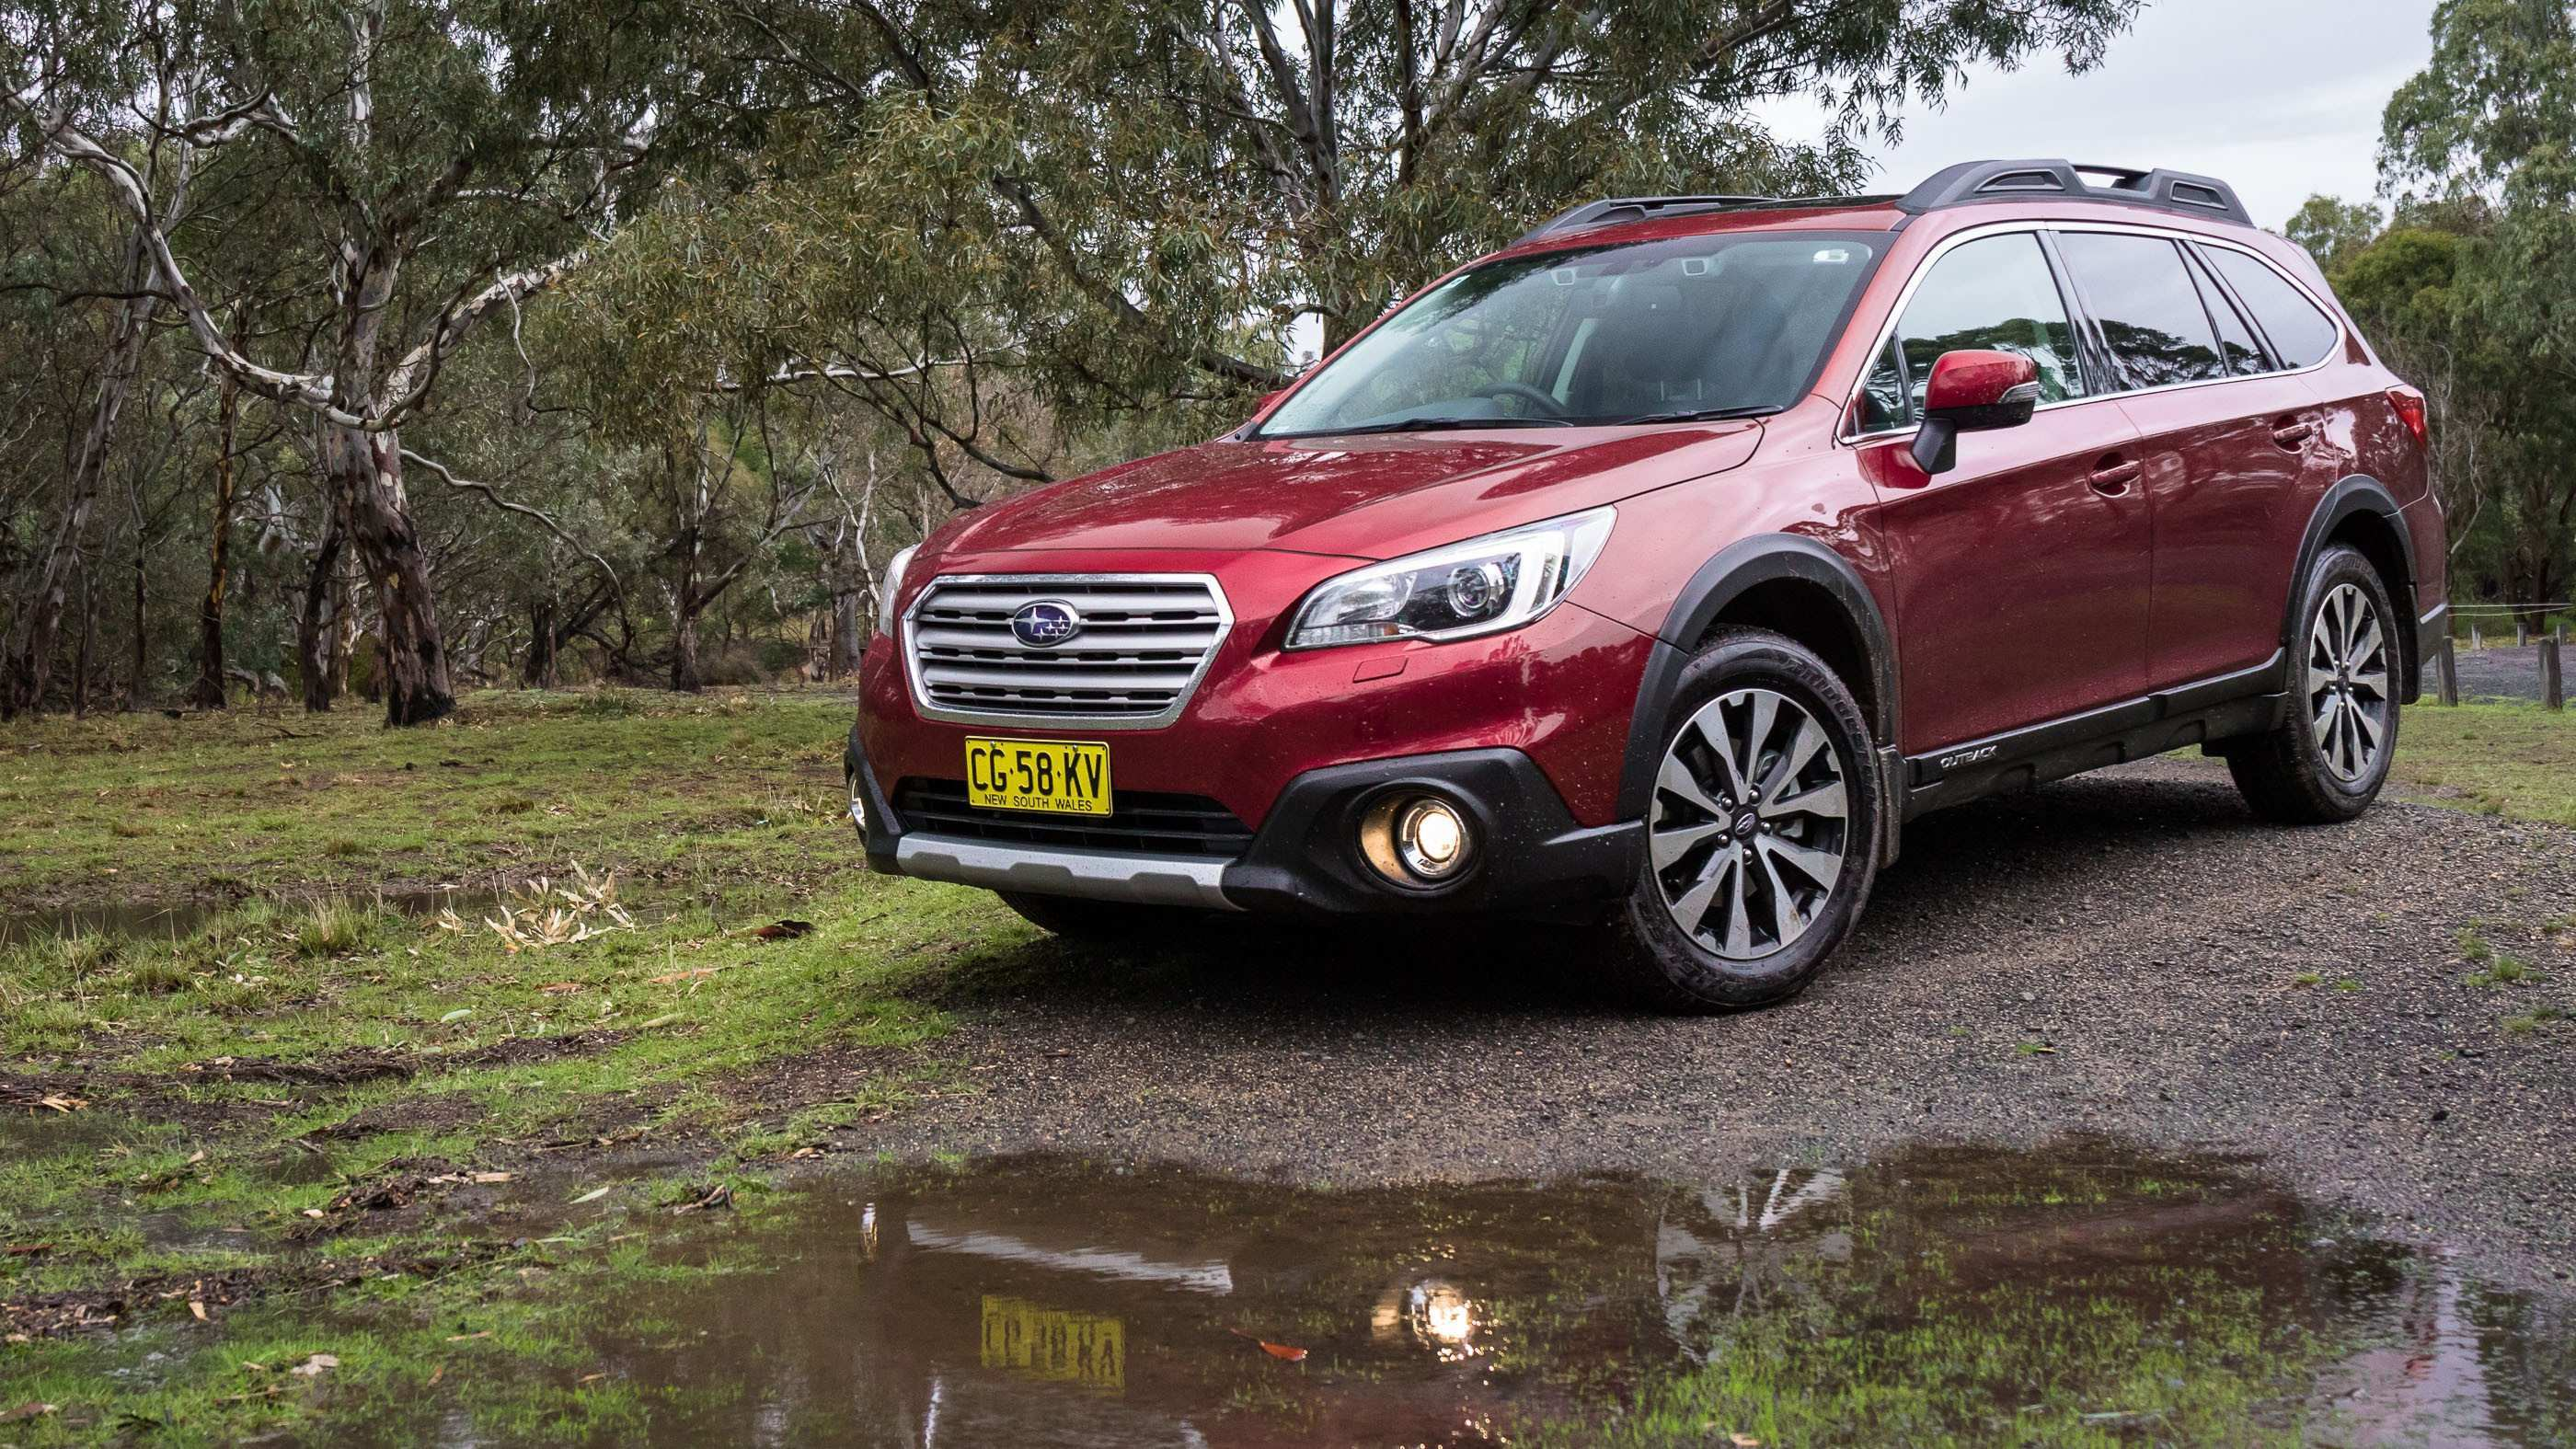 28 A 2019 Subaru Viziv Pickup Price And Review